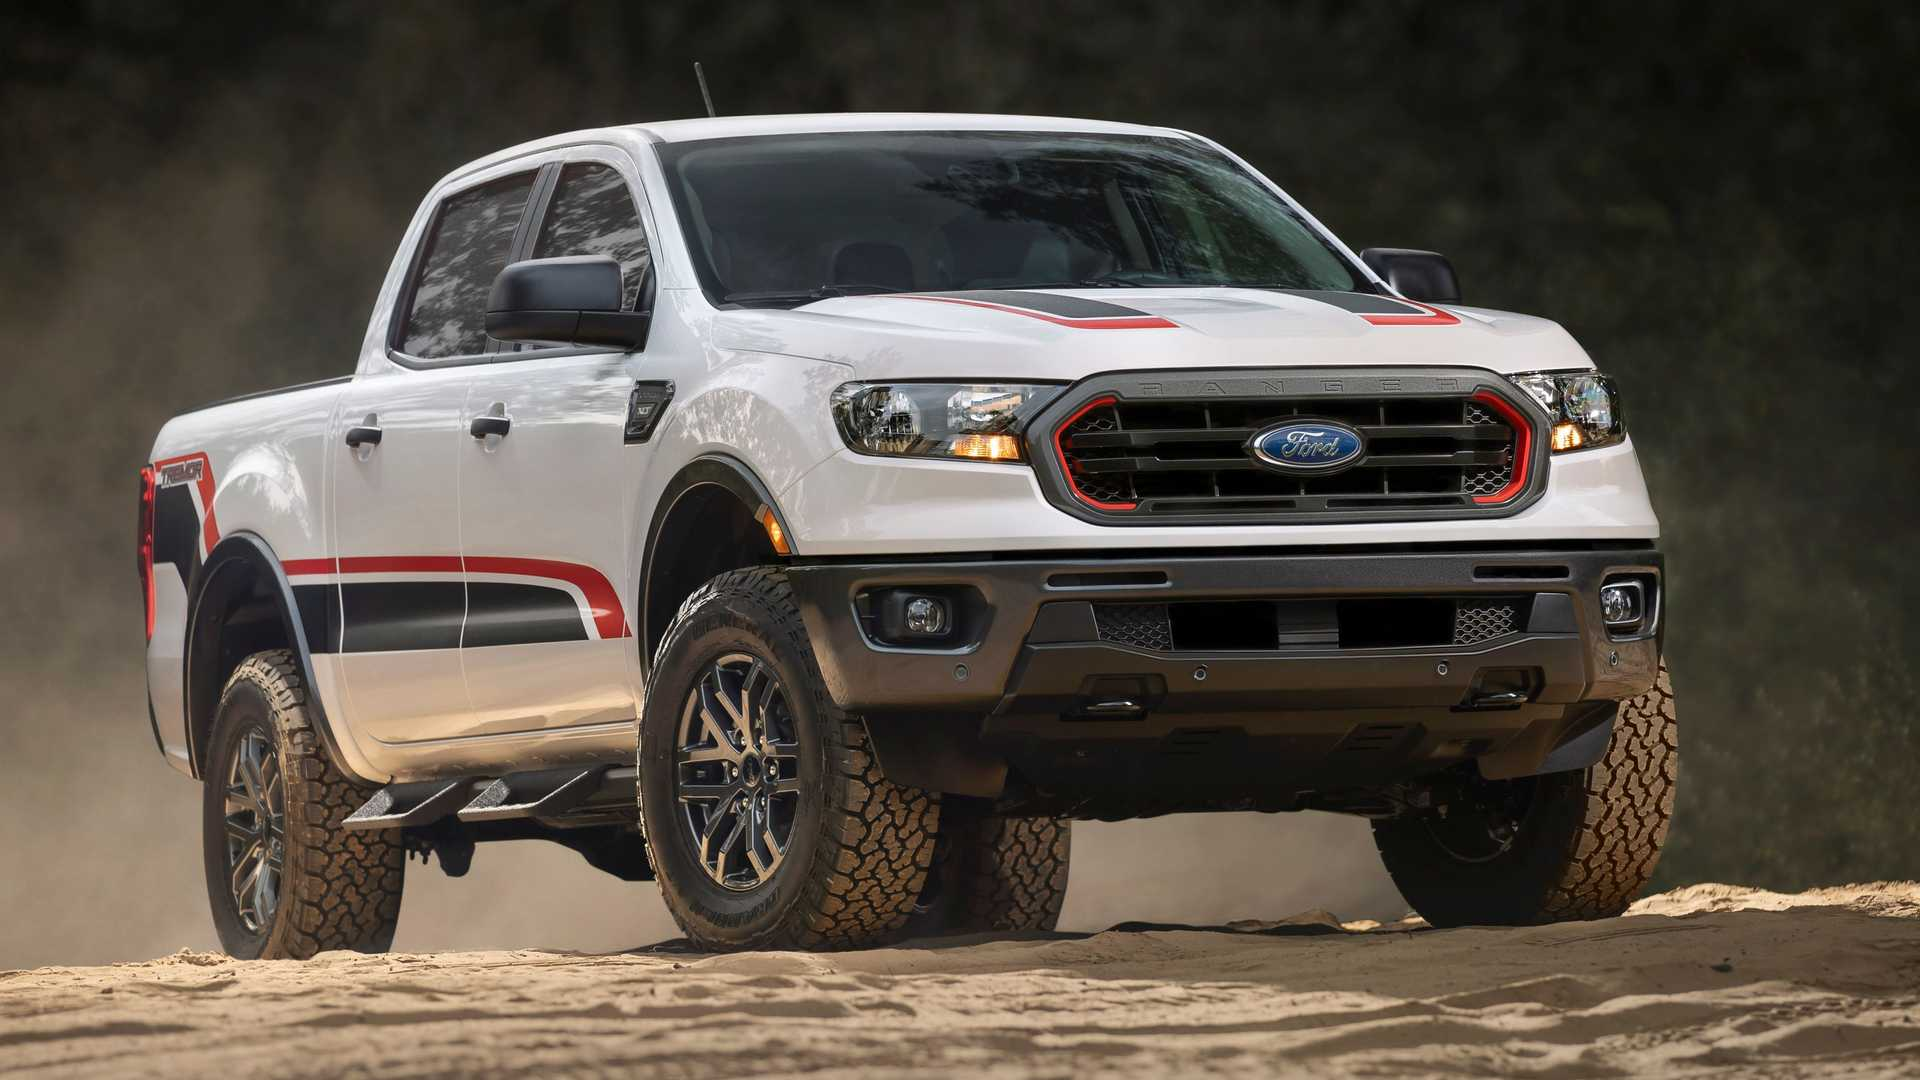 2021 Ford Ranger Tremor Revealed With Serious Off-Road Upgrades